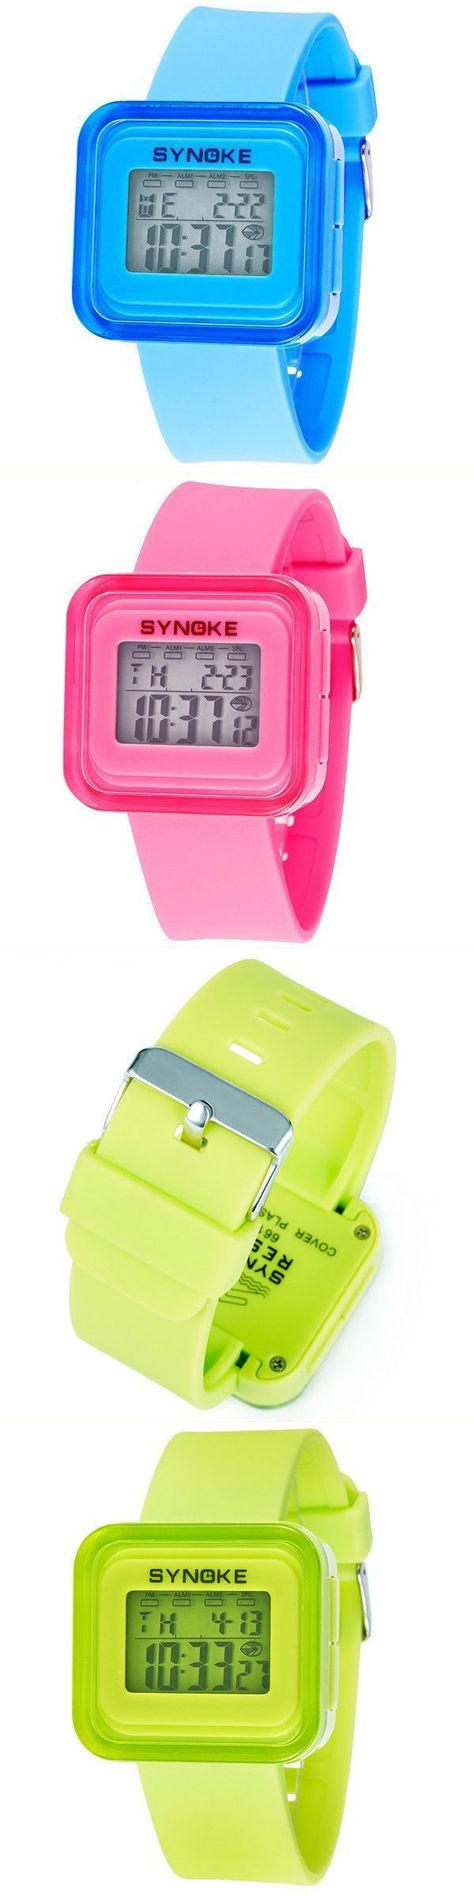 Watch Children 8217 S Movies Online Synoke 66156 Digital Luminous Waterproof Sport Casio Childrens Watches Uk Childre